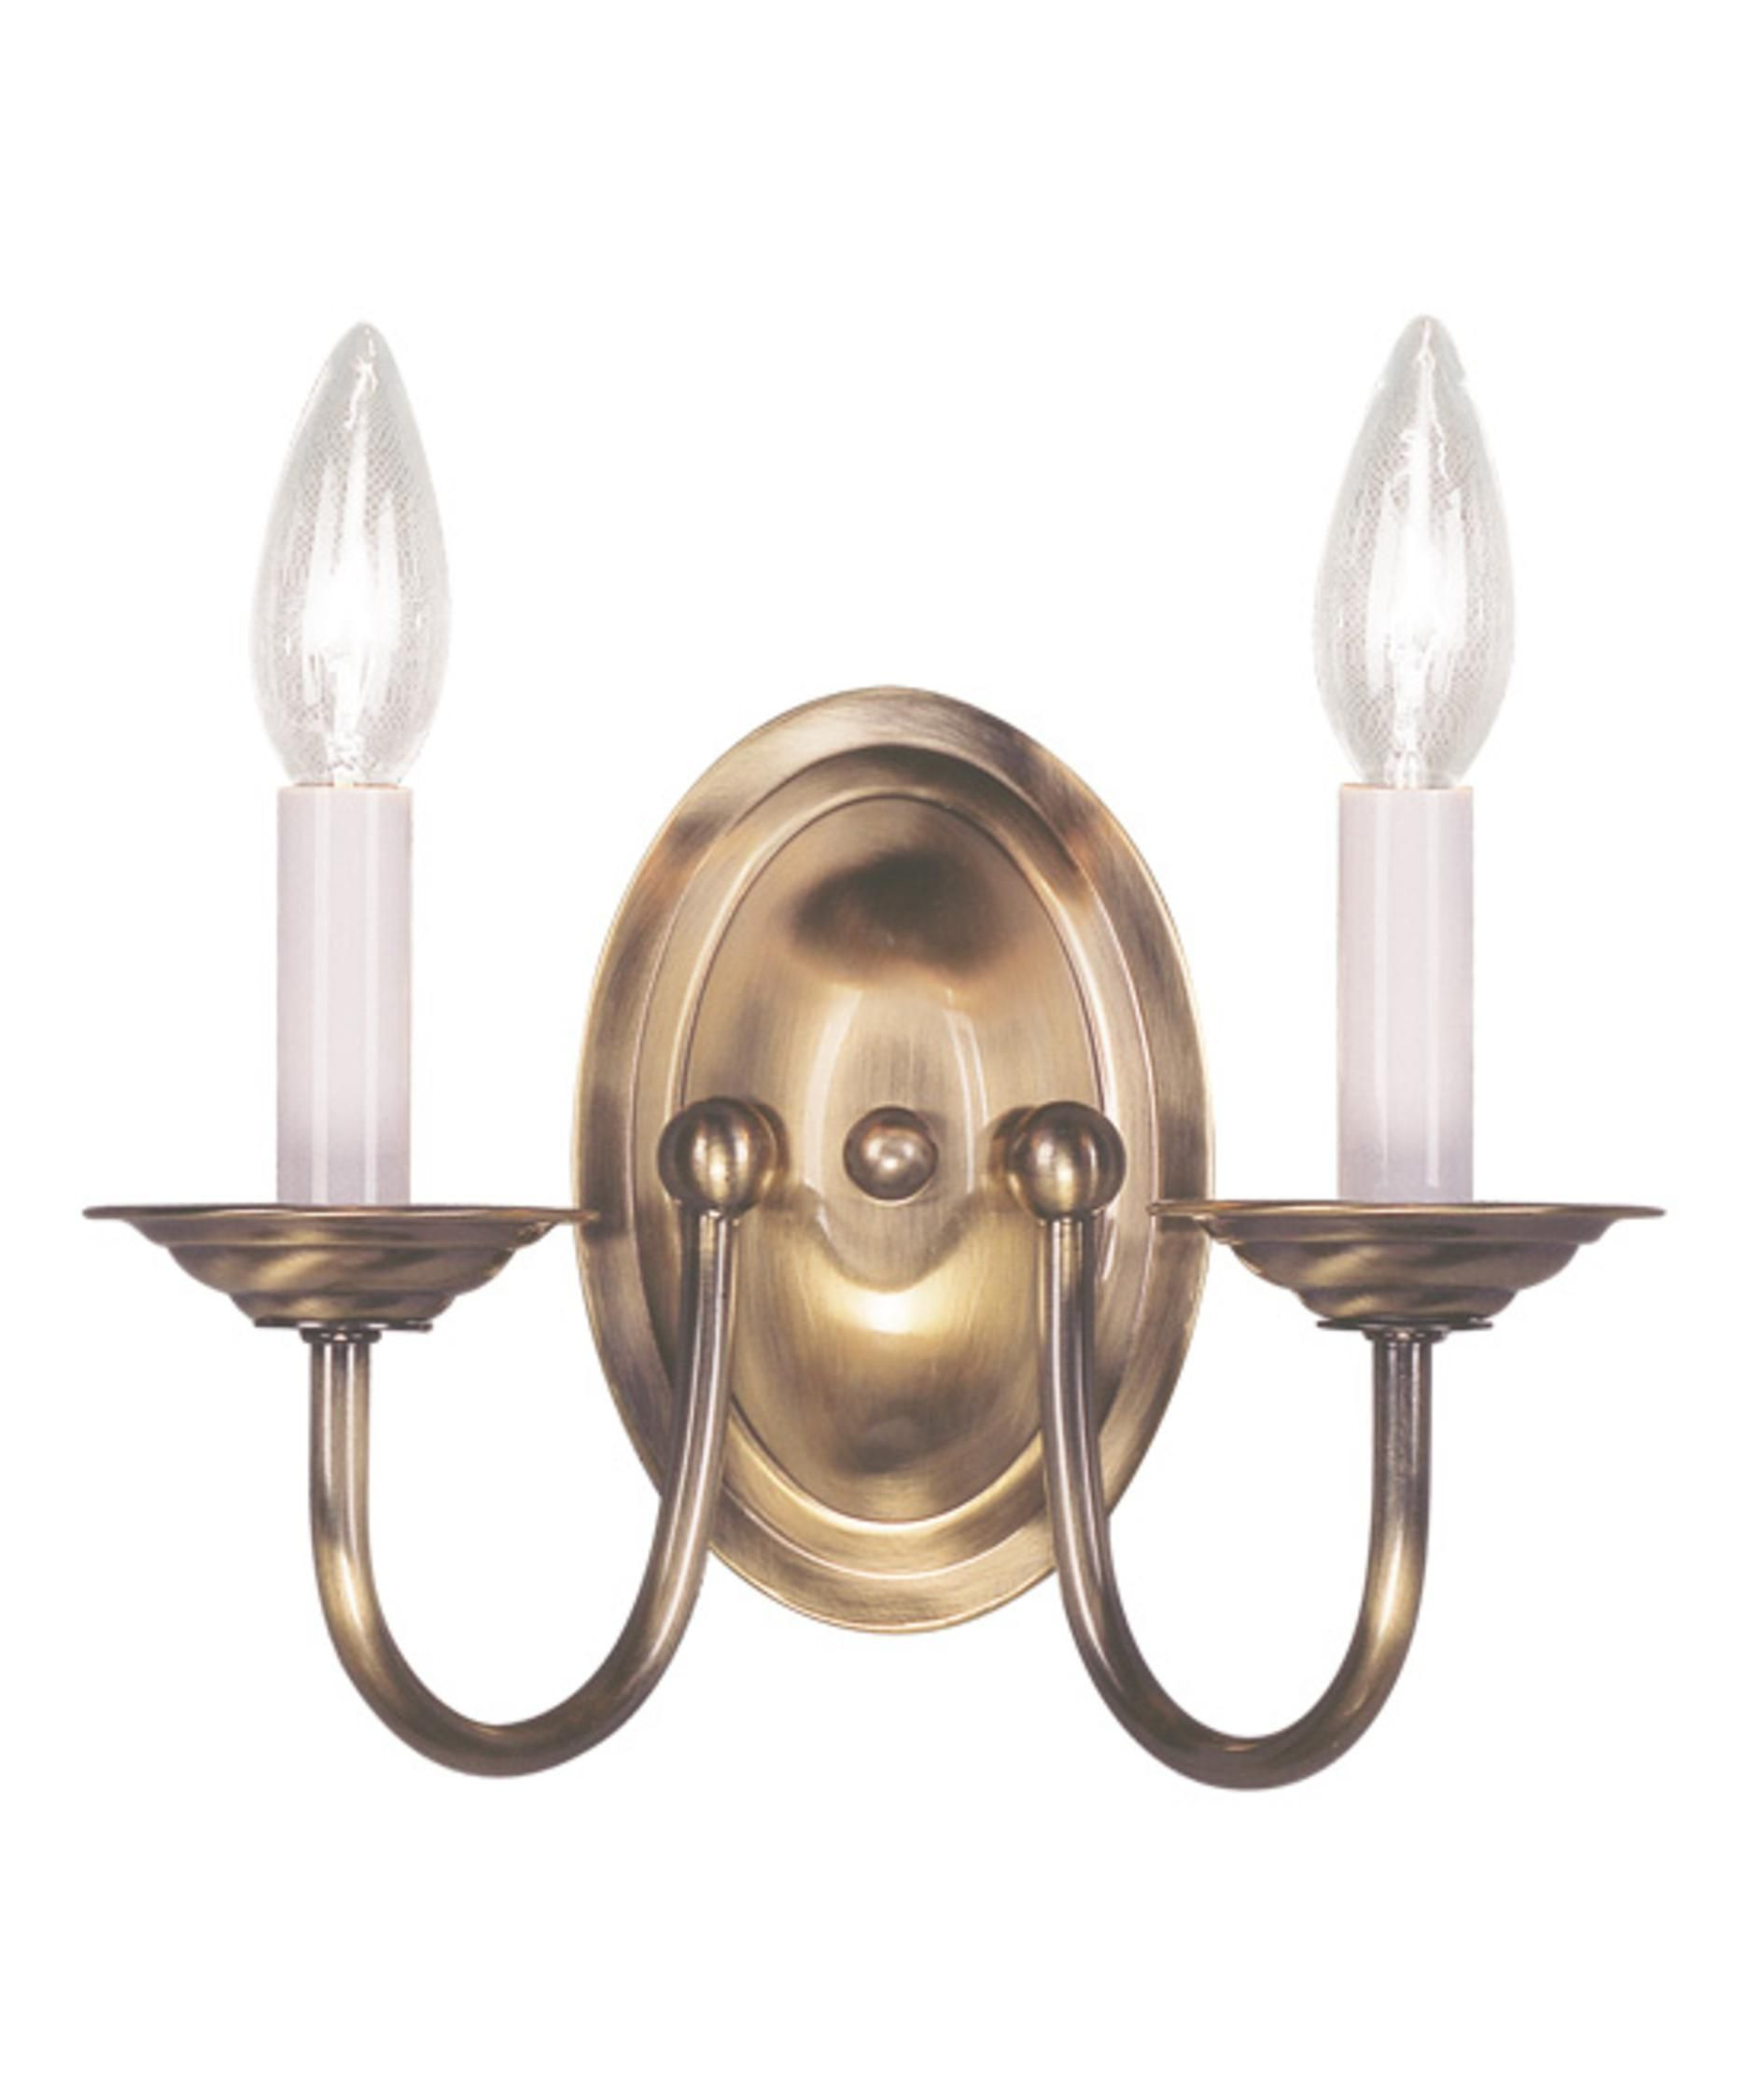 Home Basics 10 Inch Wall Sconce By Livex Lighting Decorating Wall Sconces Wall Sconce Lighting Candle Wall Sconces